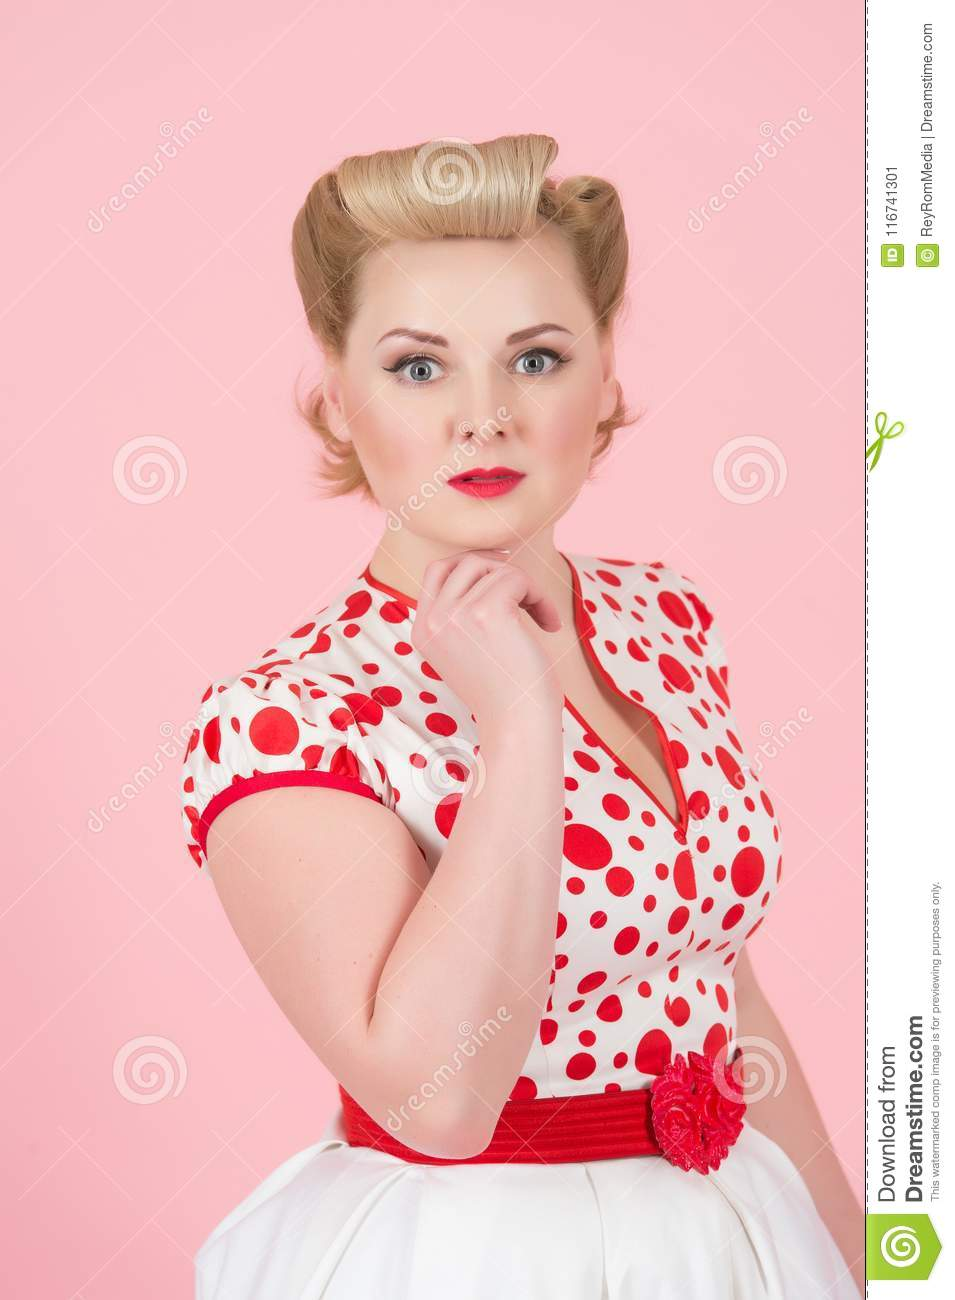 Beautiful portrait of vintage styled female model with glamour pin-up makeup and hair dress.